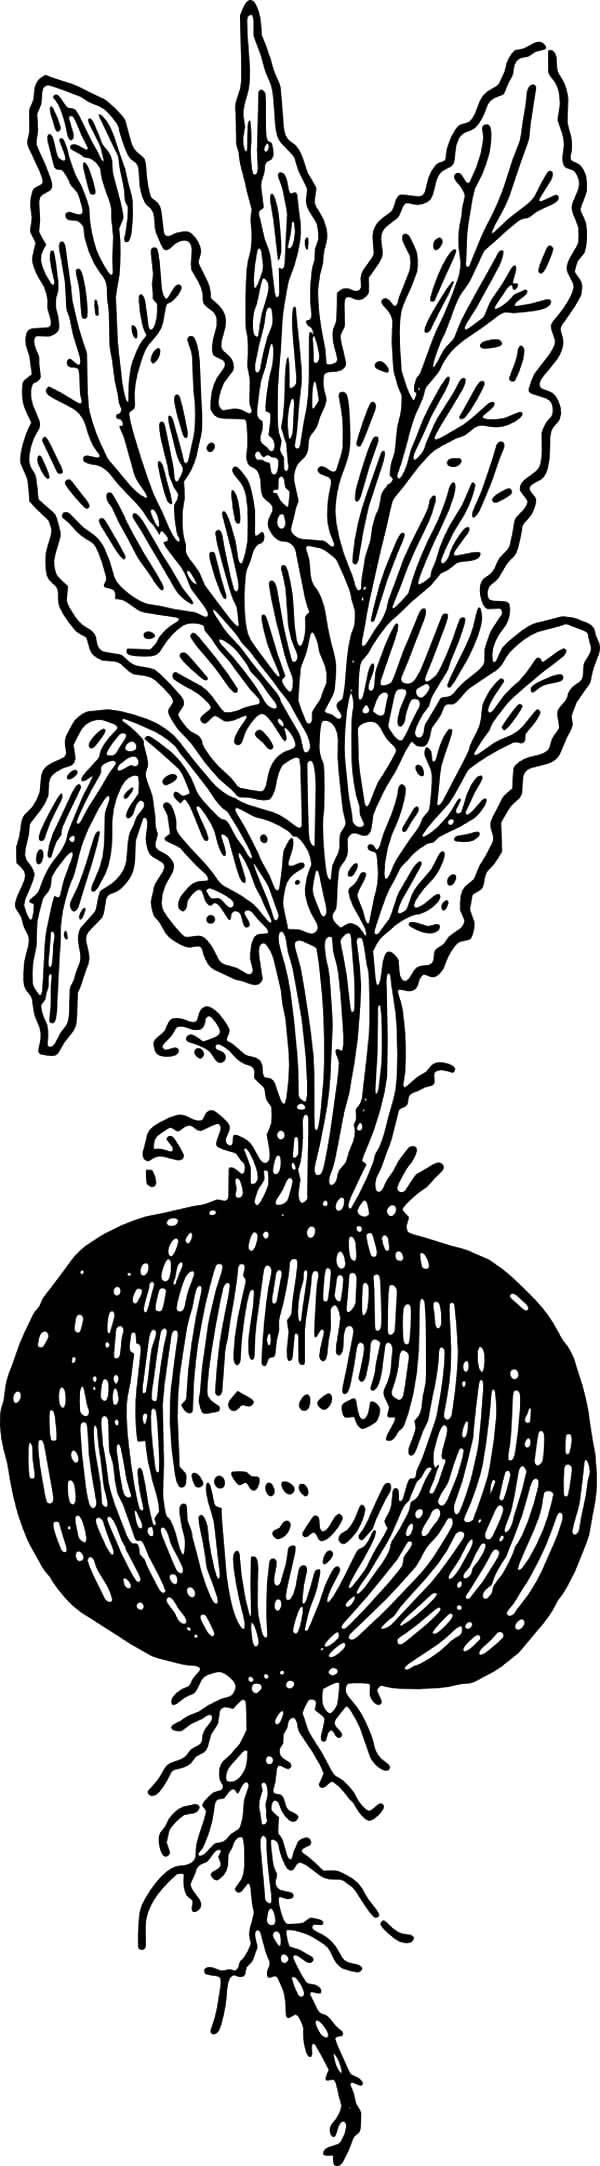 Beets Root Coloring Pages | Best Place to Color